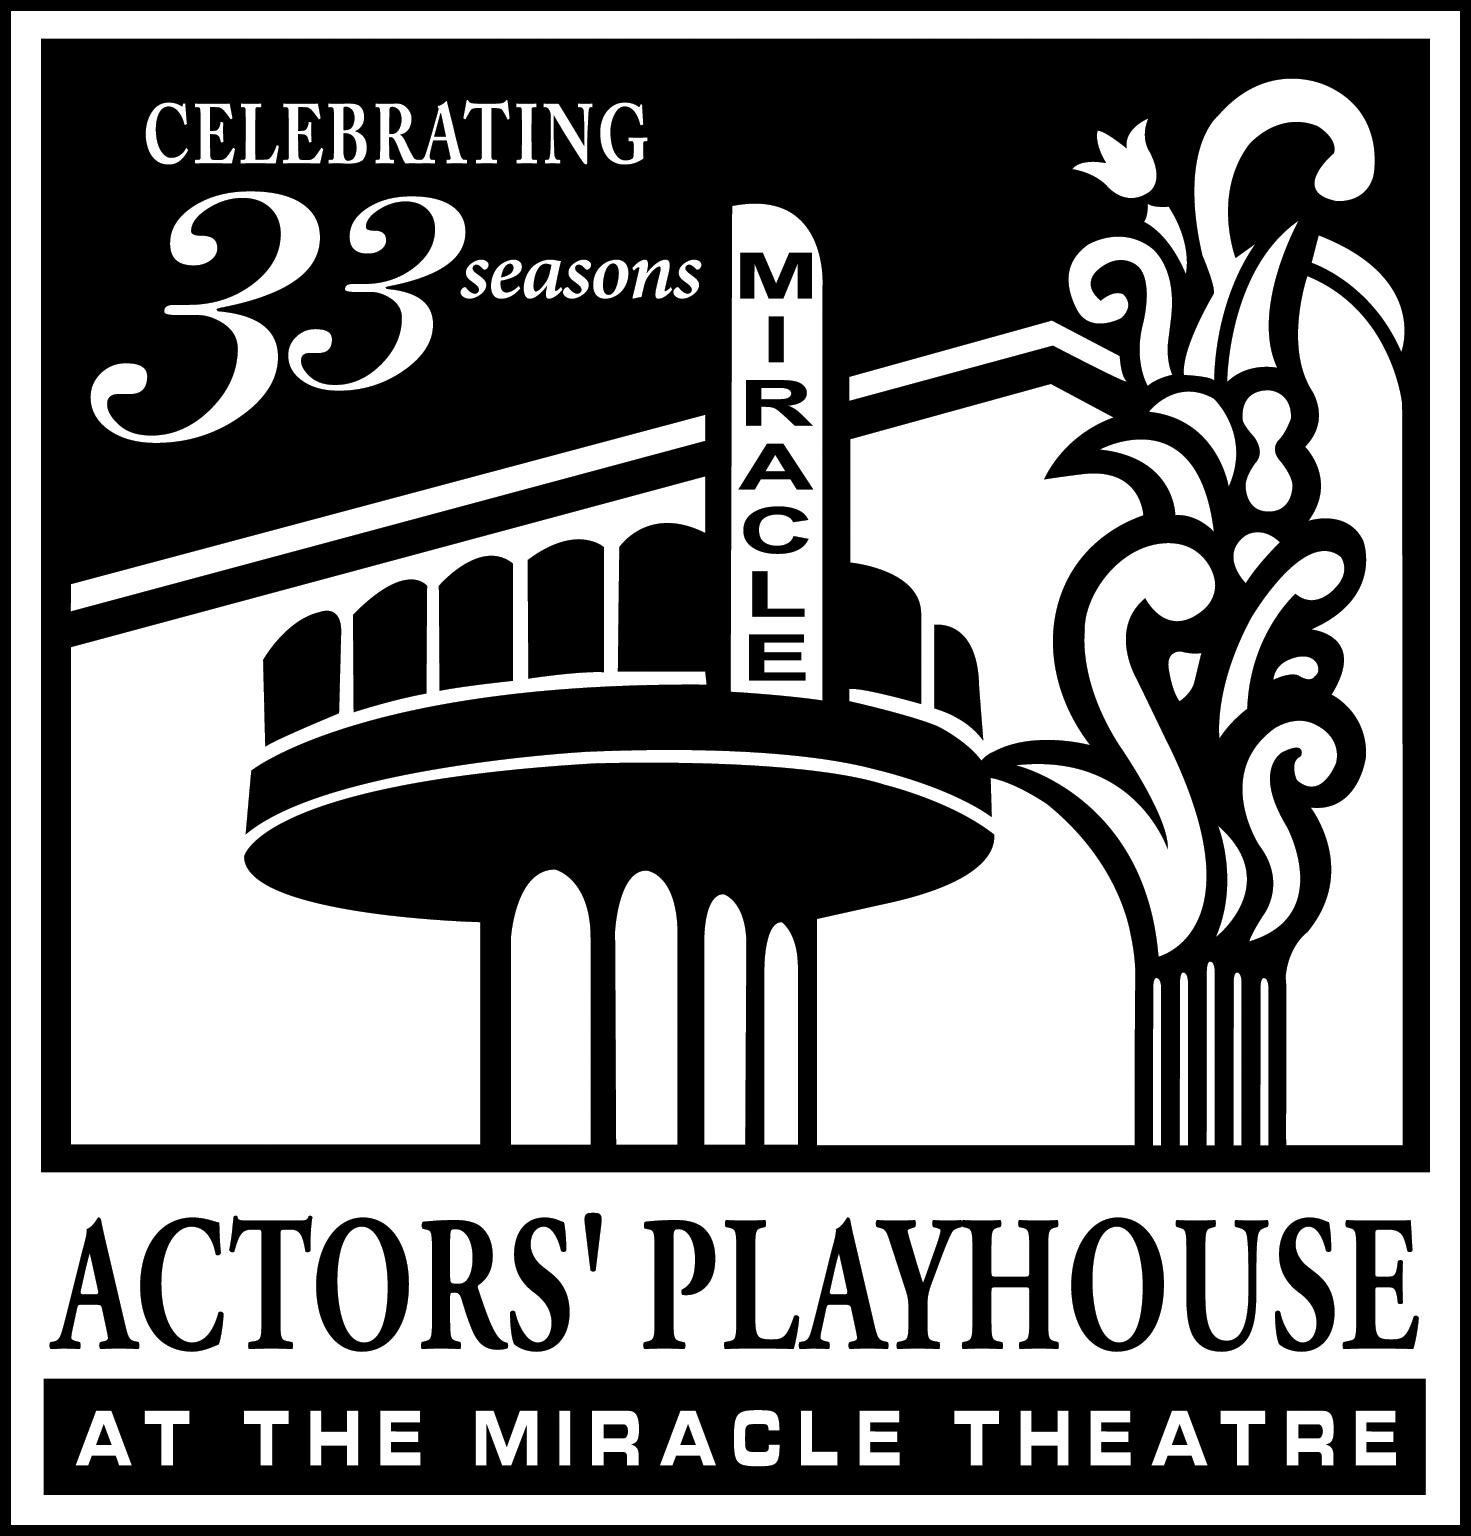 Actors' Playhouse at the Miracle Theatre